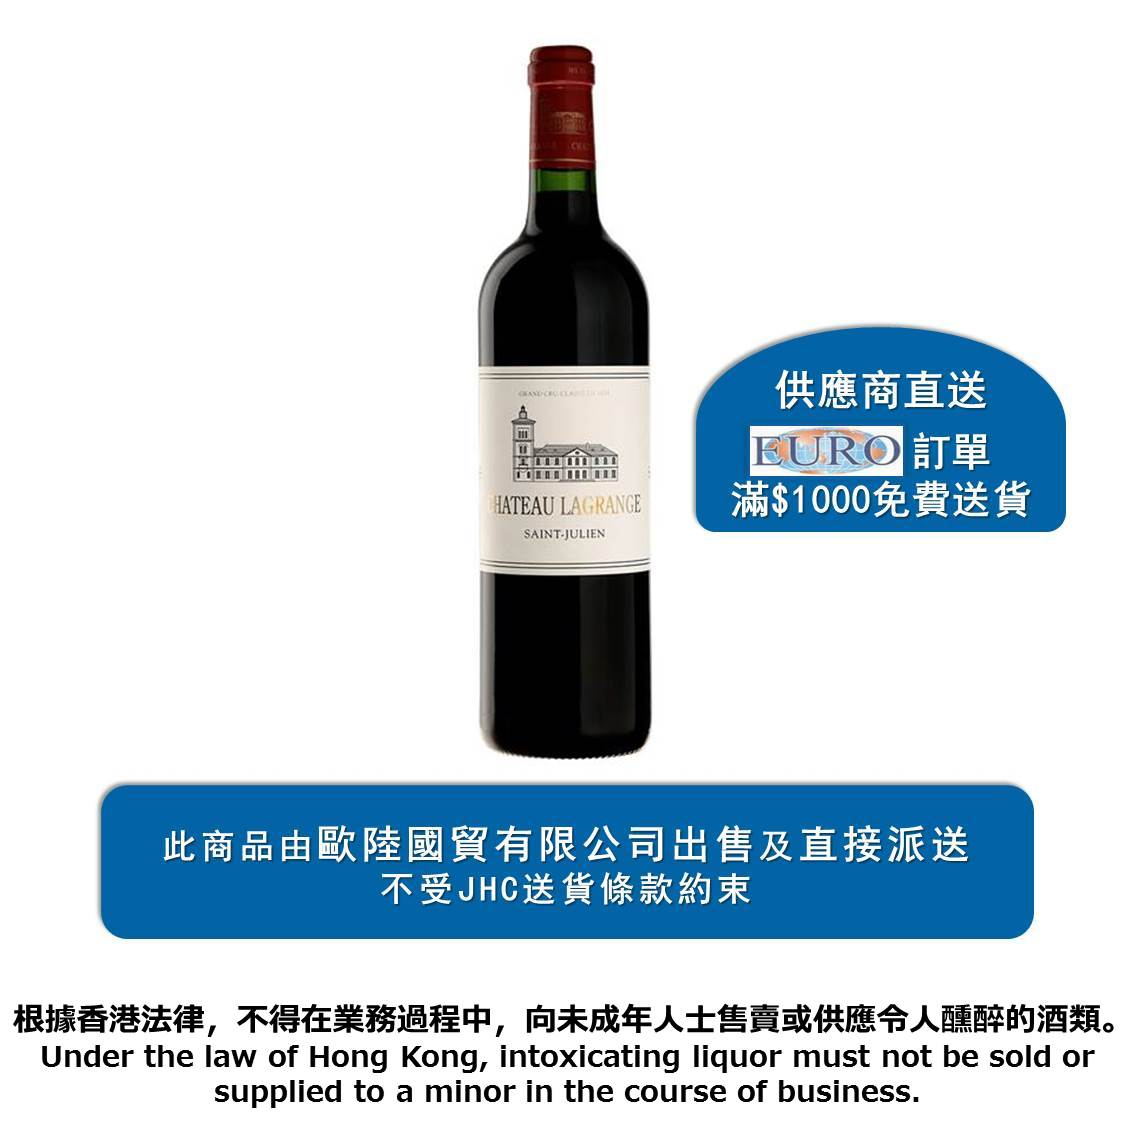 CHATEAU LAGRANGE葡萄酒 2013